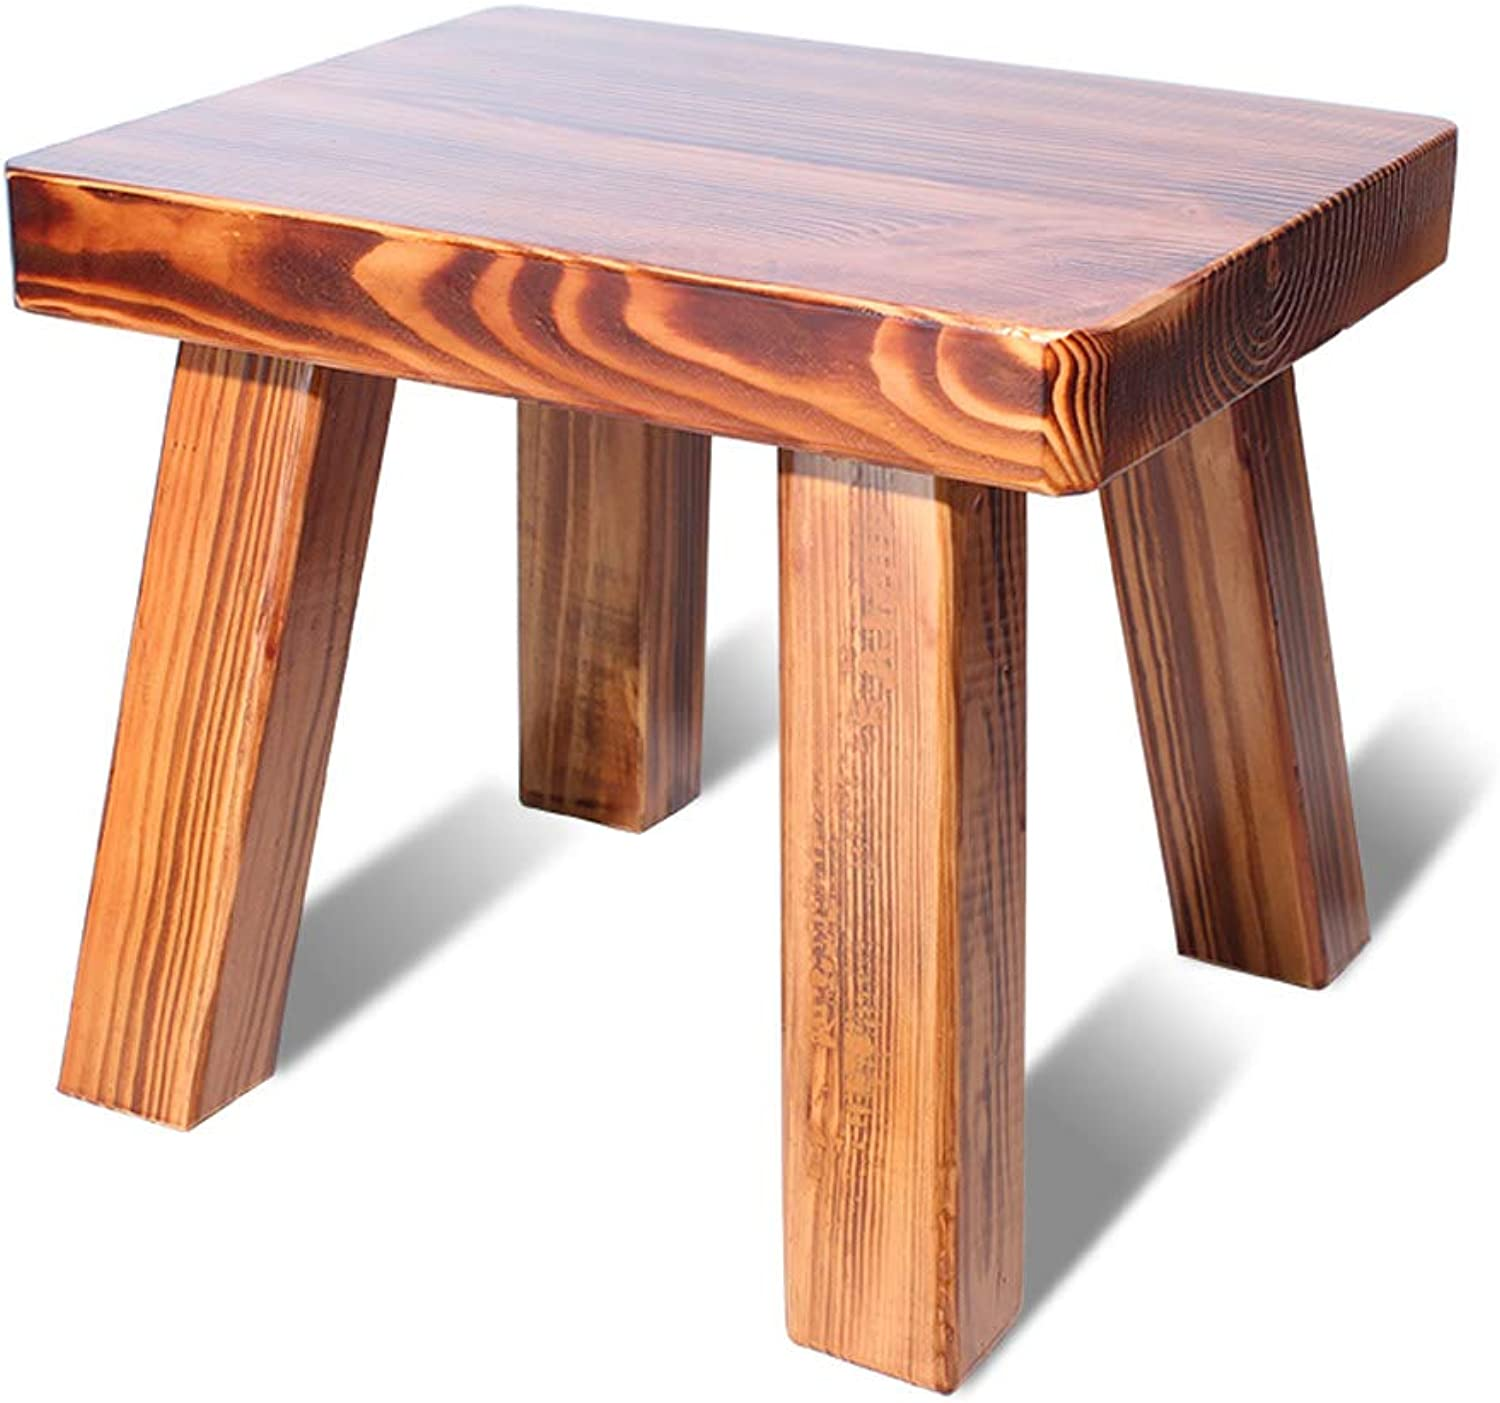 LIUXUEPING Small Stool Fashion Small Bench Solid Wood Small Stool Change shoes Bench Low Stool Adult Small Square Stool